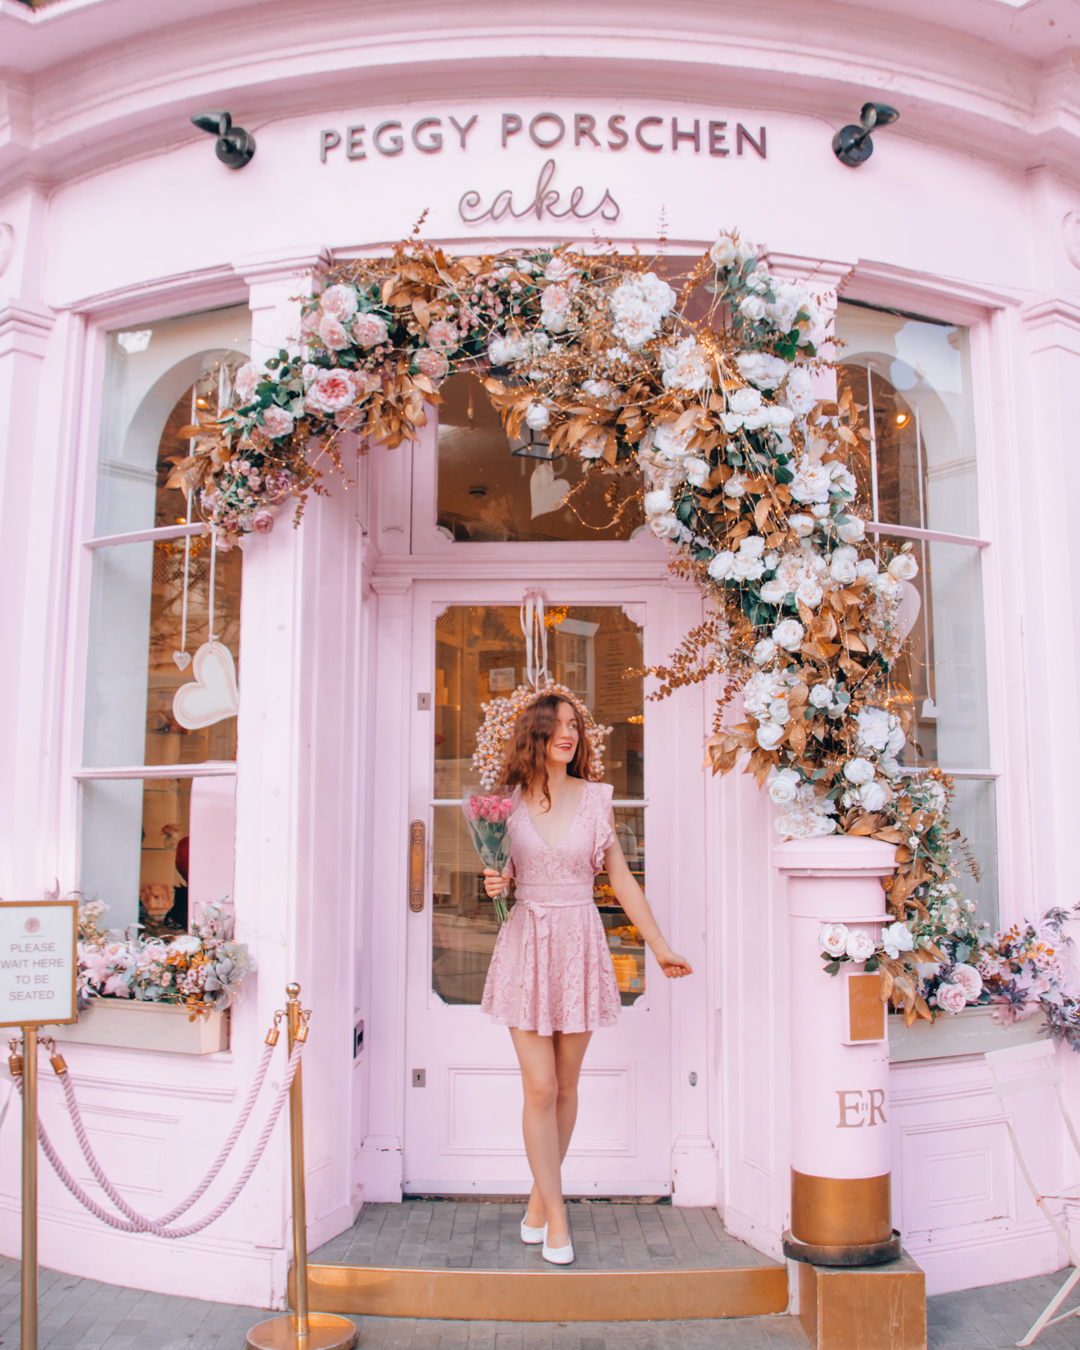 The front of Peggy Porschen Cakes in London with Instagrammable decorations